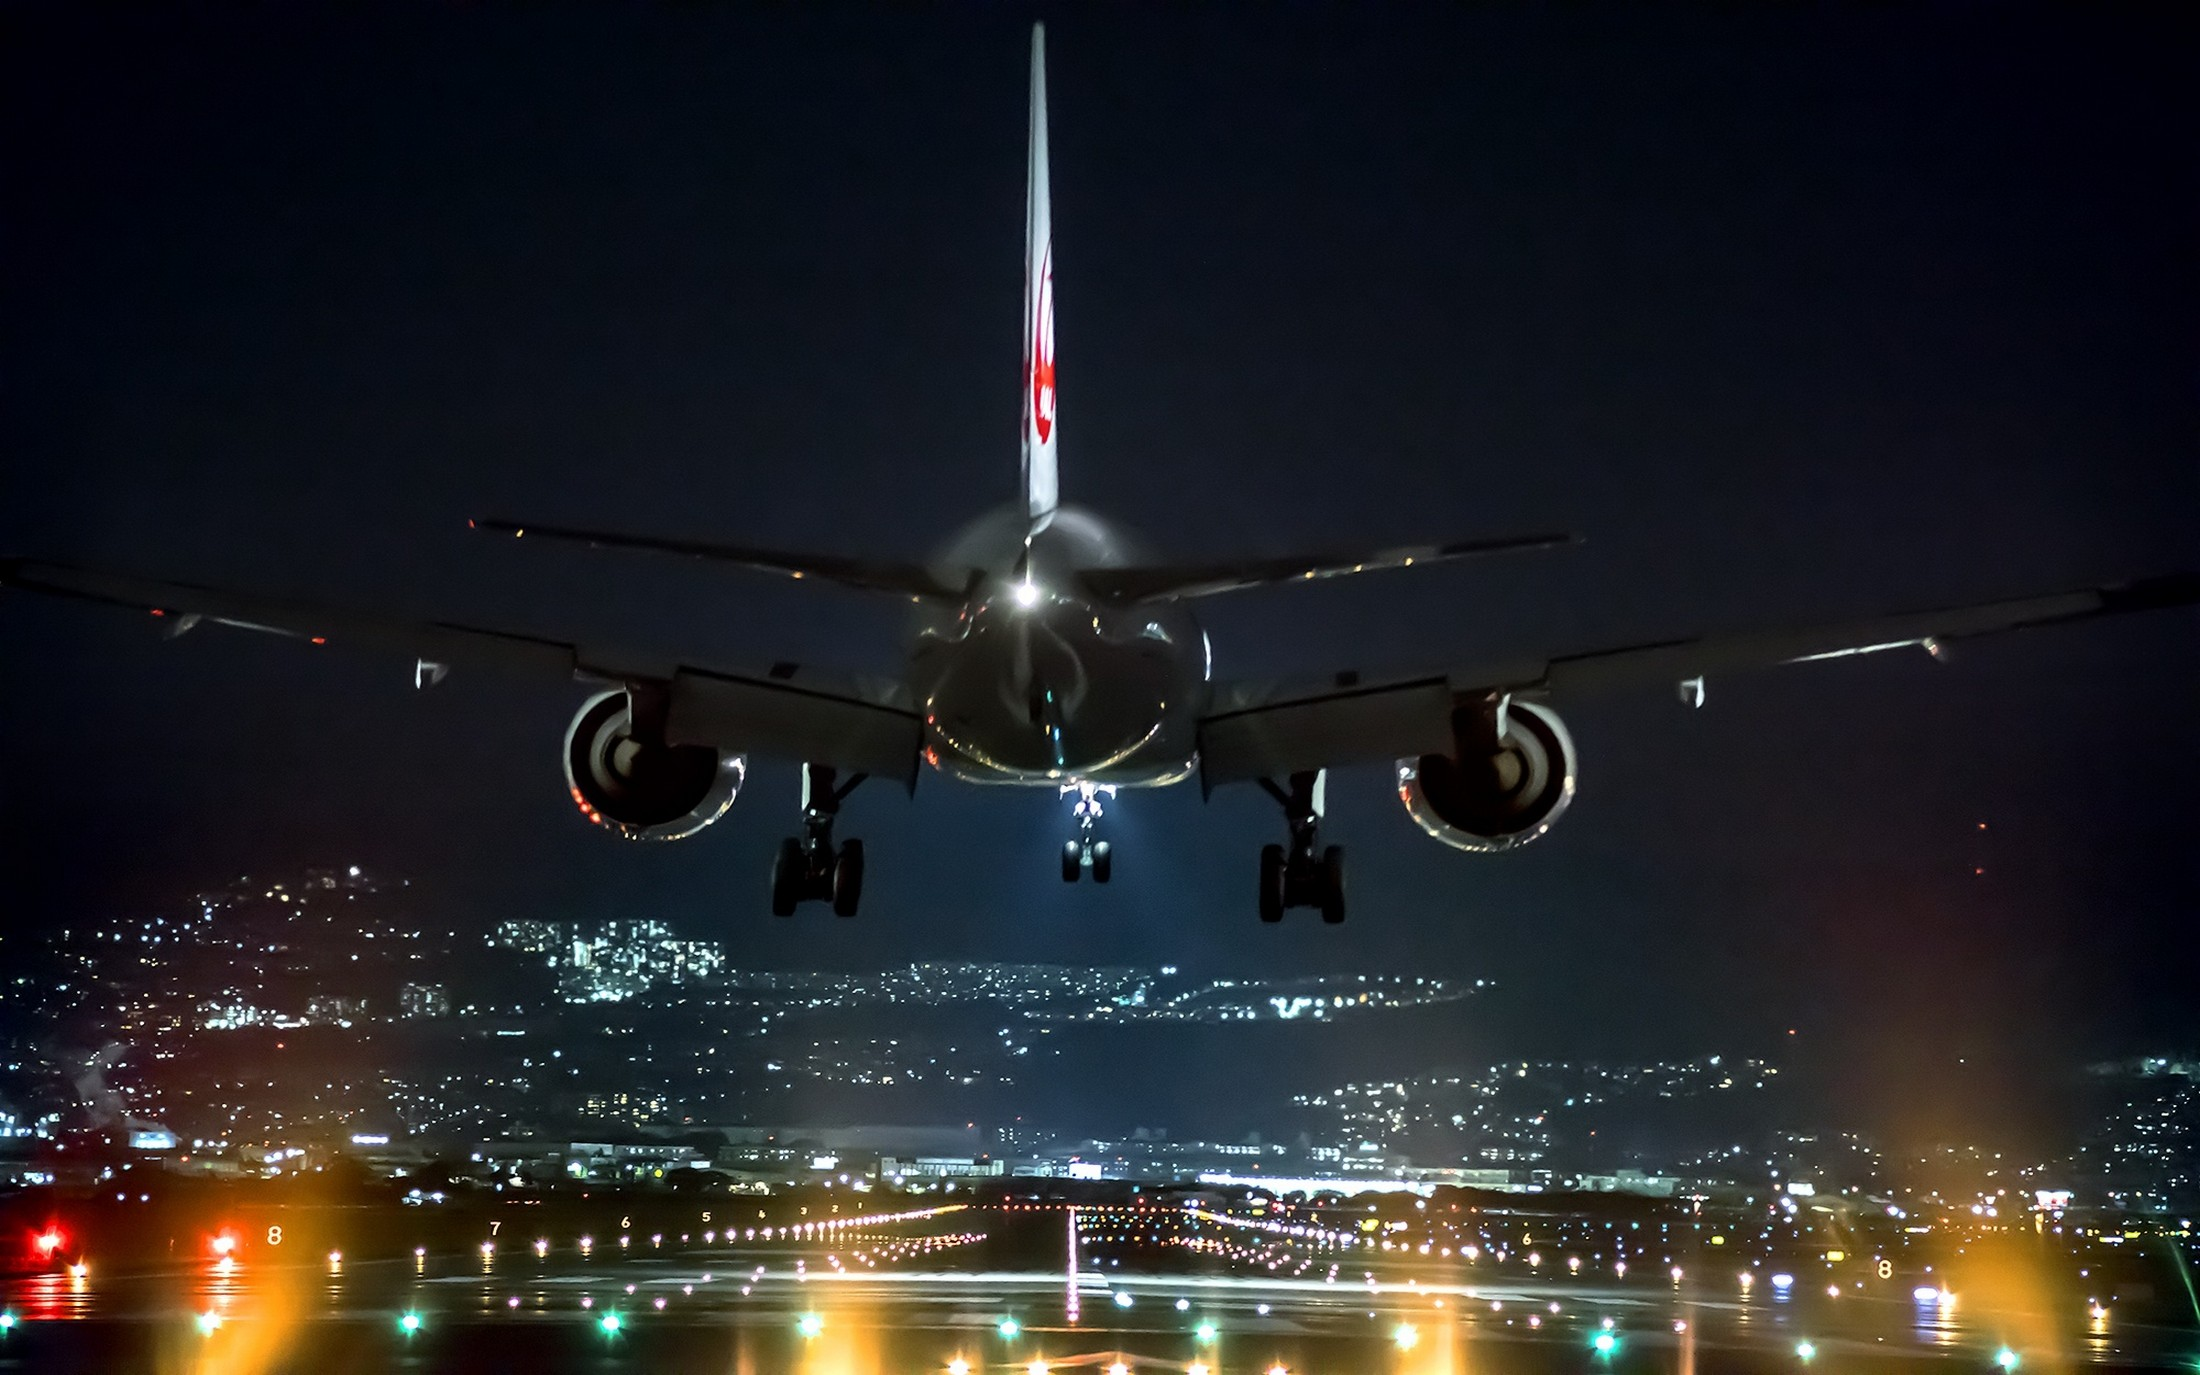 Pilot revealed the truth about night landing of the airplanes